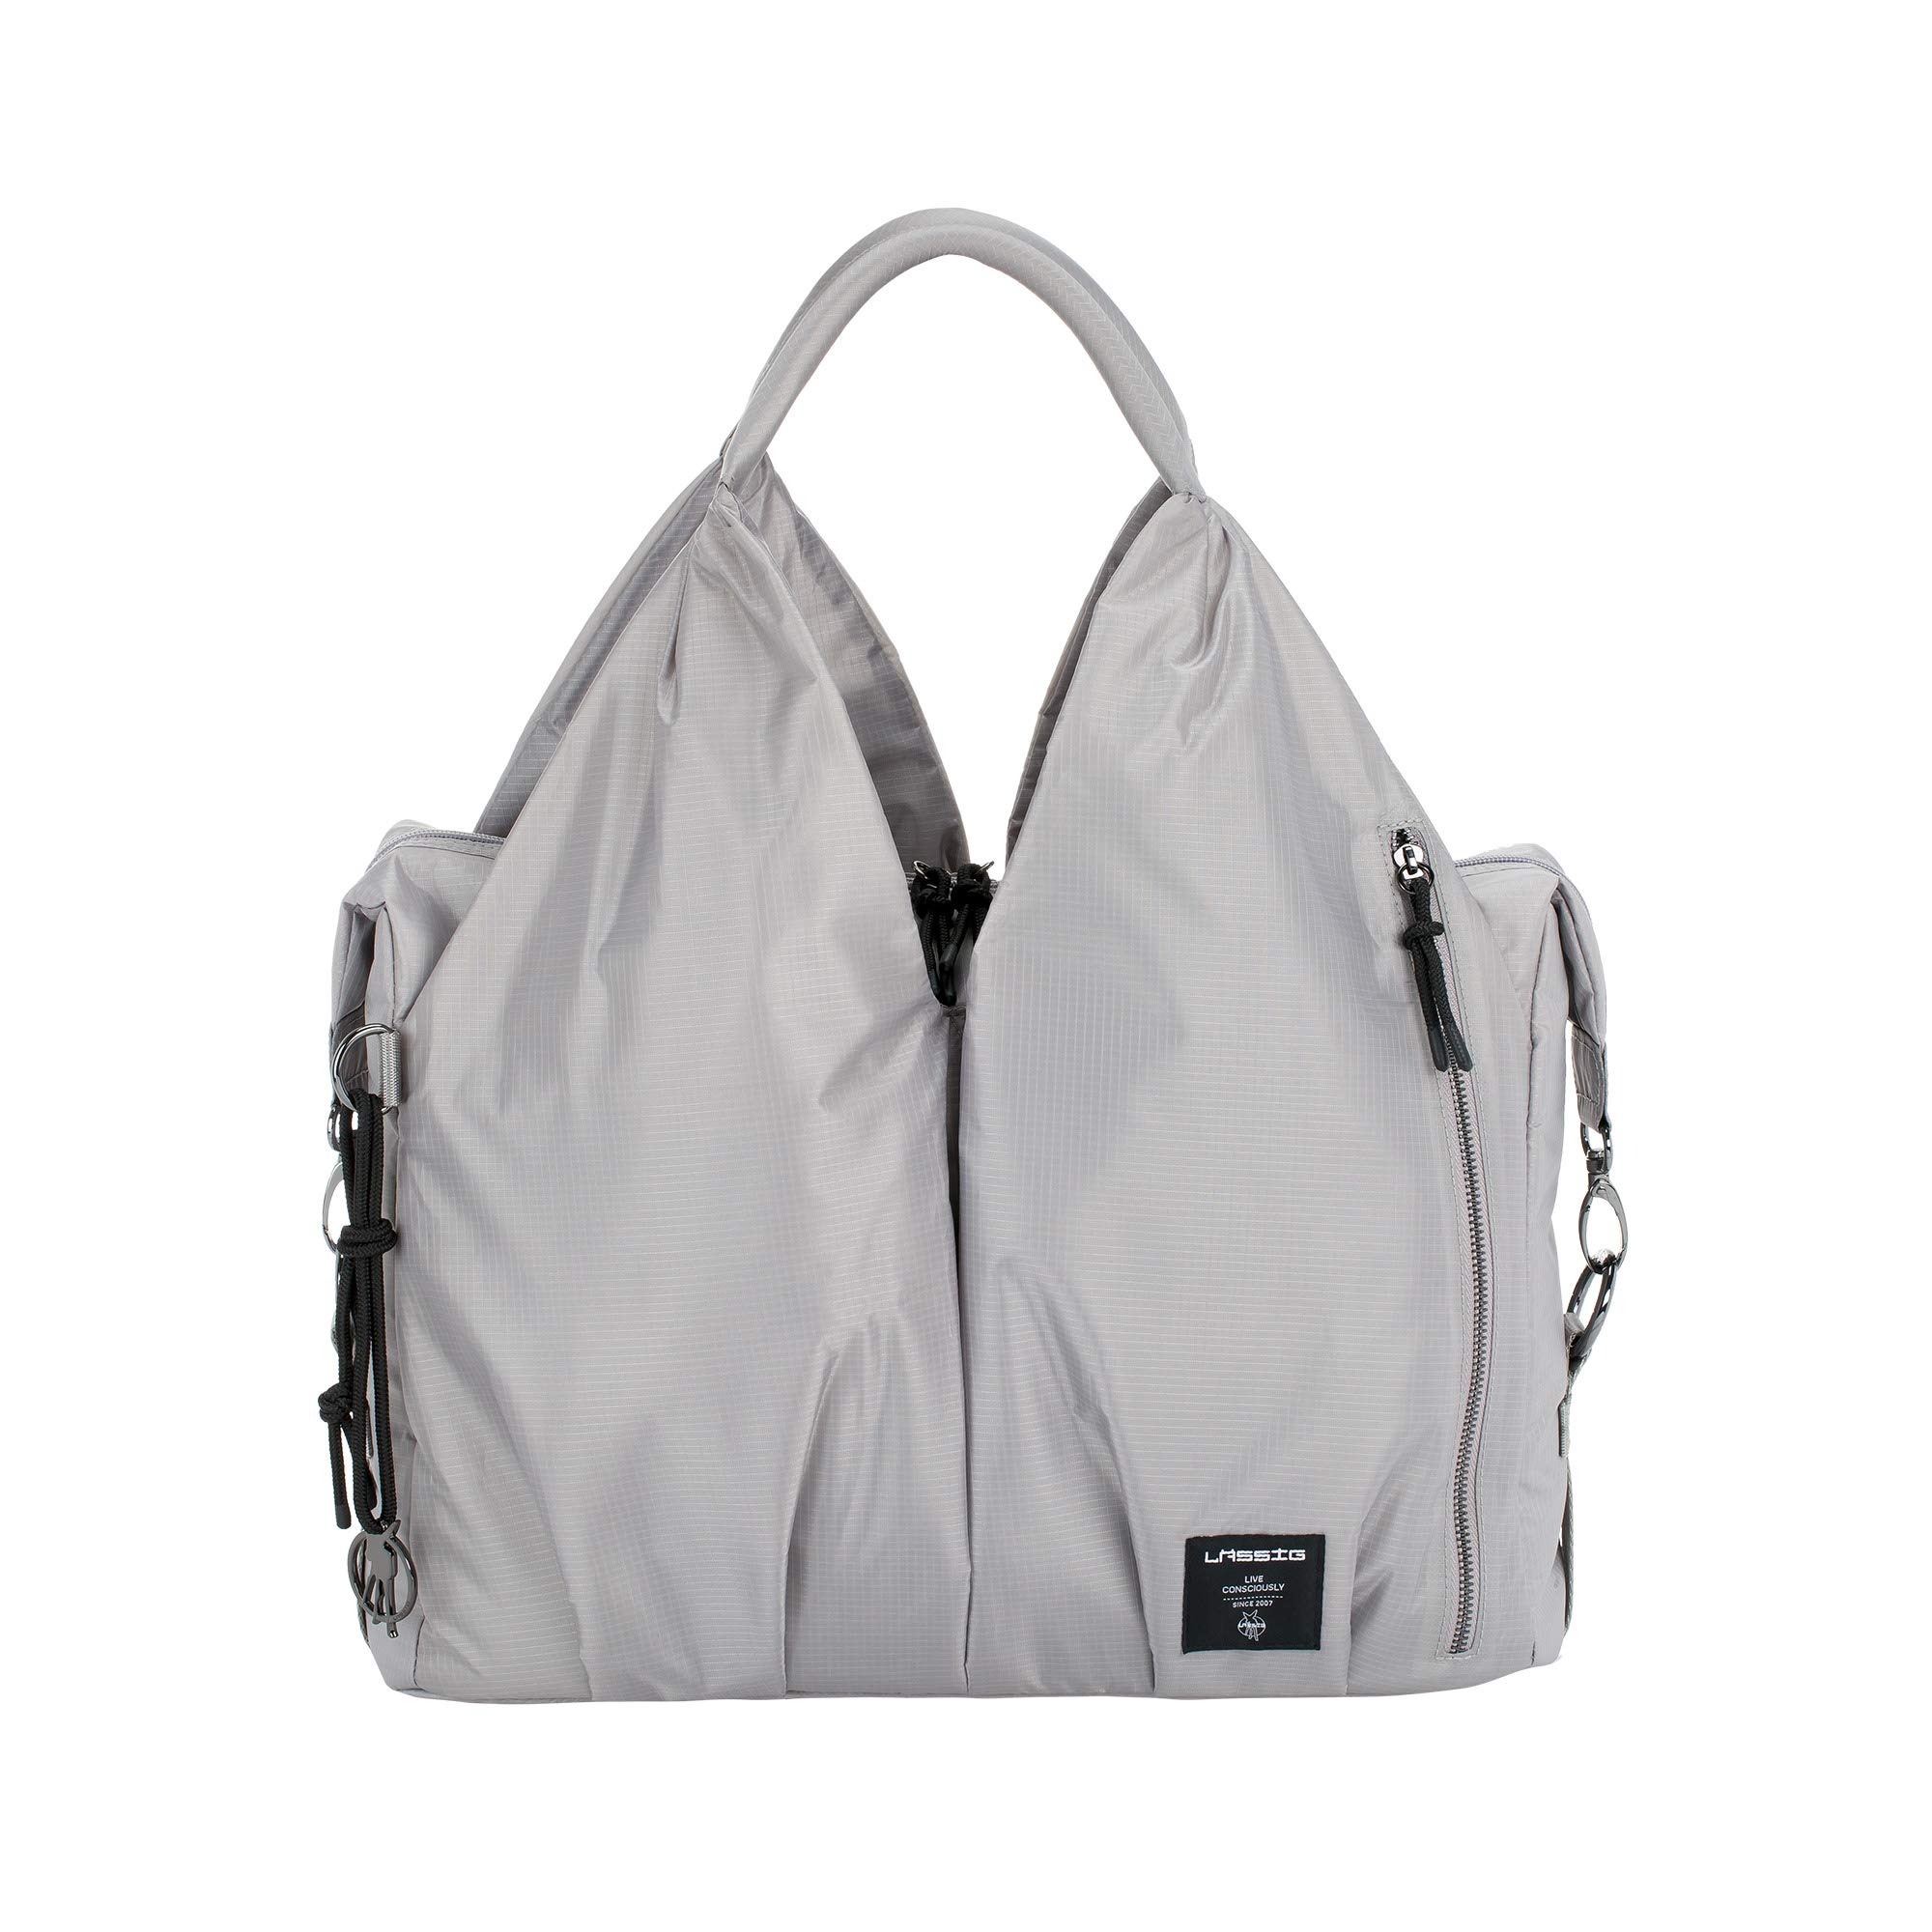 Lassig Green Label Neckline Bag POP, Grey